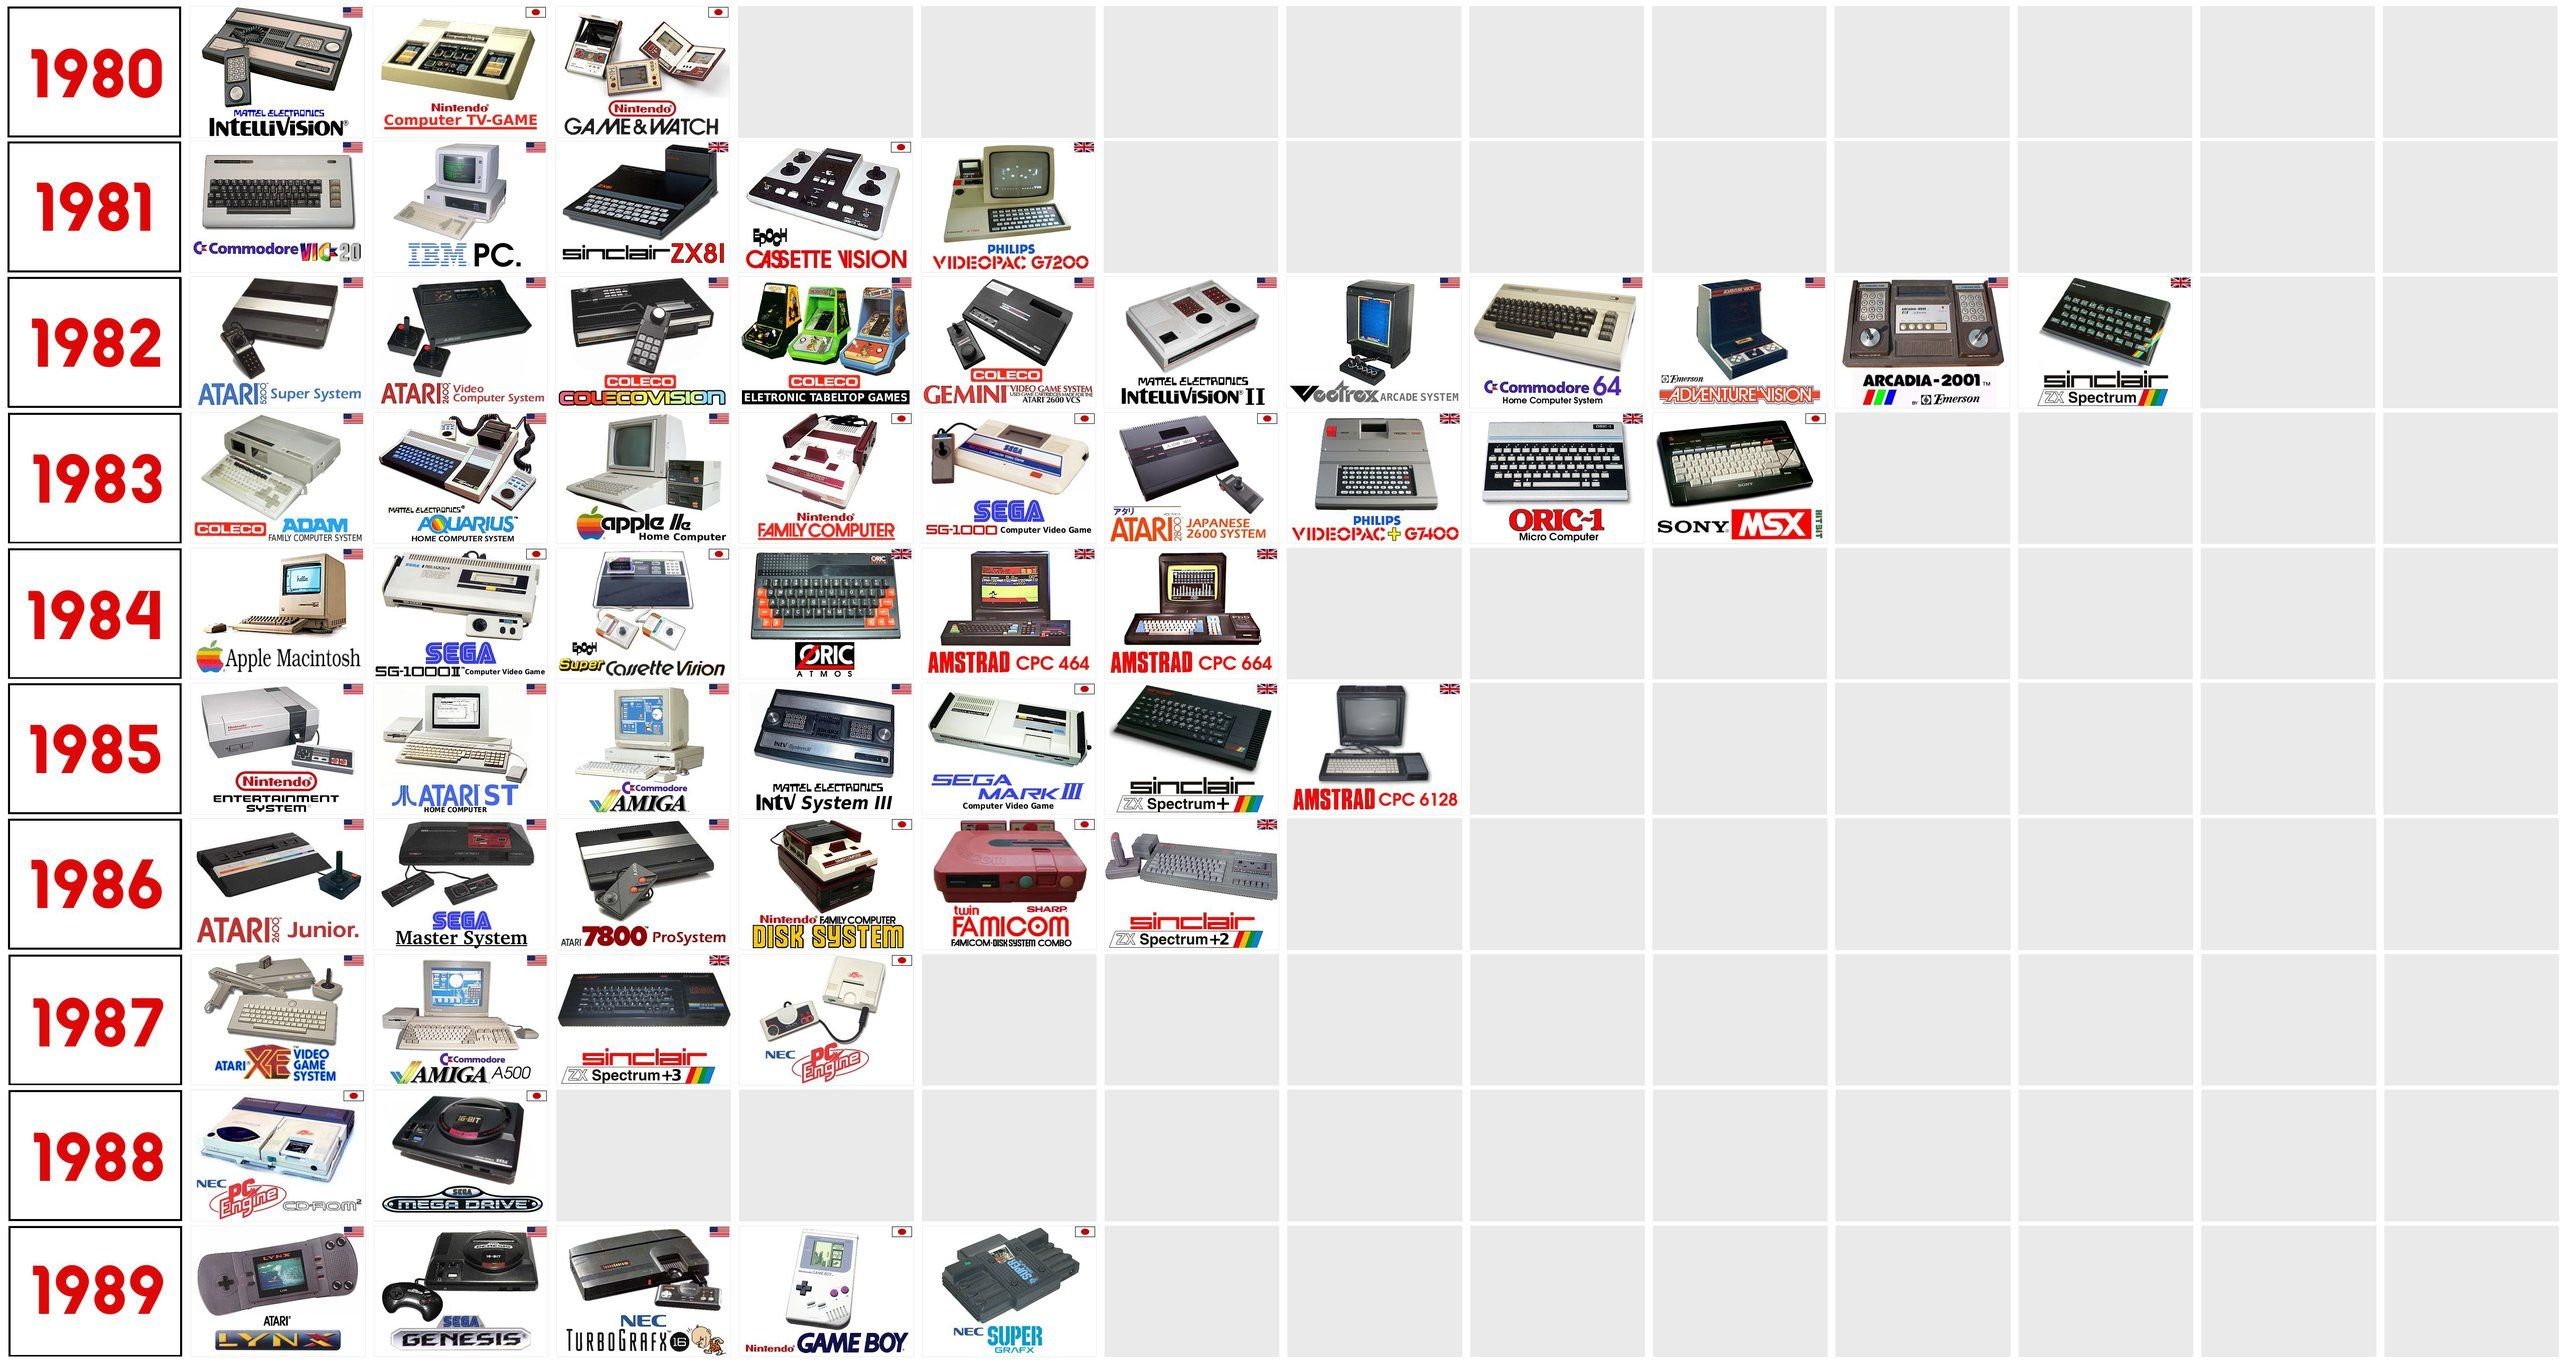 evolution of gaming consoles timeline